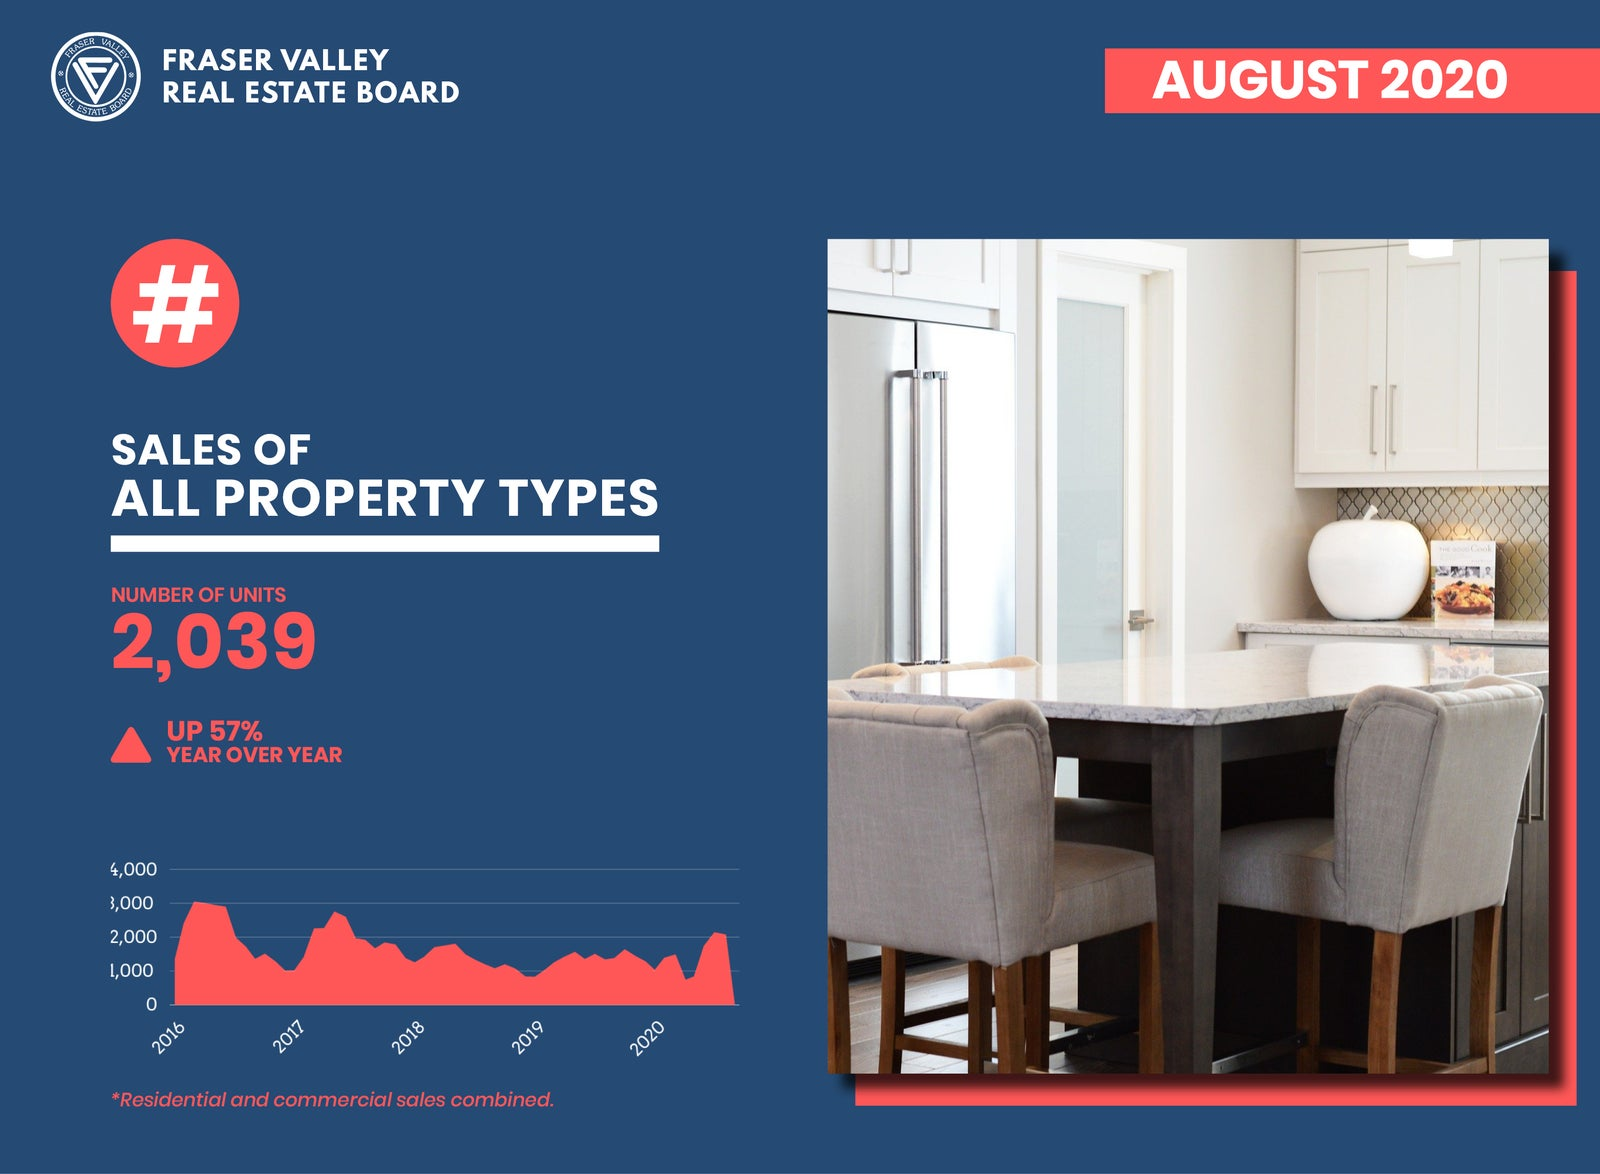 FVREB Property Sales Report - August 2020